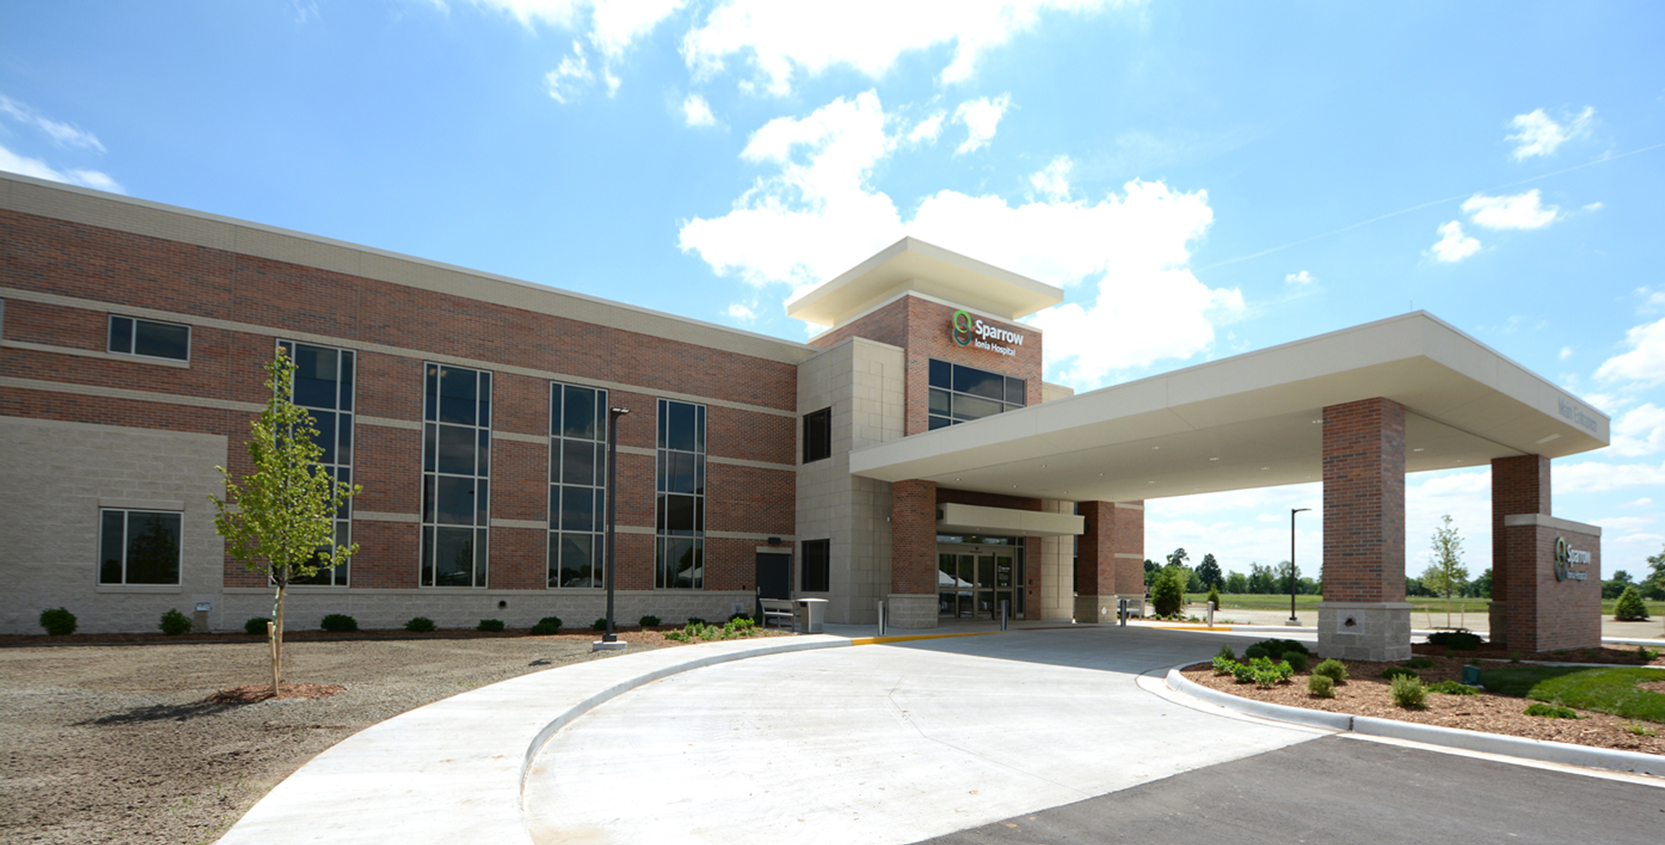 Sparrow-Ionia-Replacement-Hospital-Exterior-2-1665x845